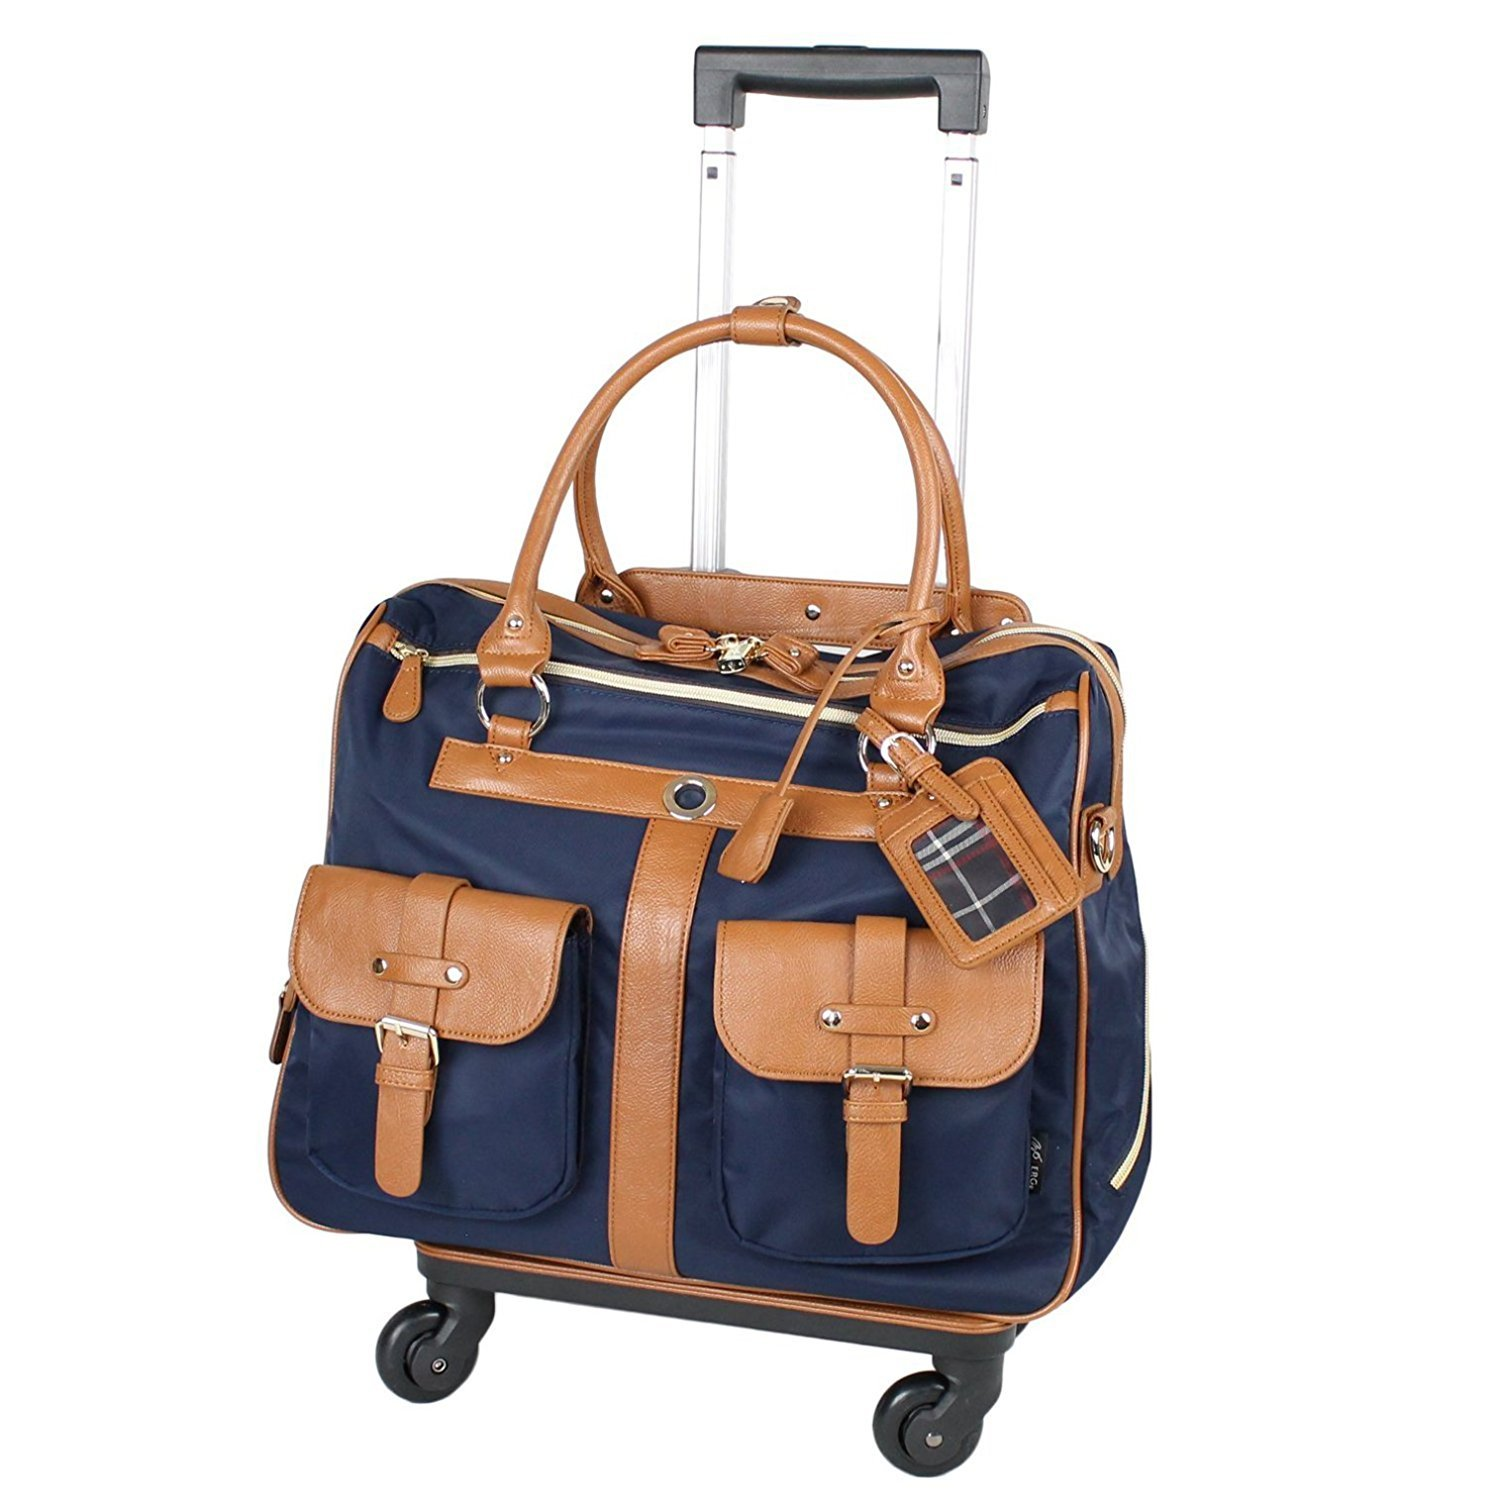 MOIERG Travel TotesTrolley Luggage suitcase with Multi-Pckets (navy blue)[71-11208-50] by MOIERG